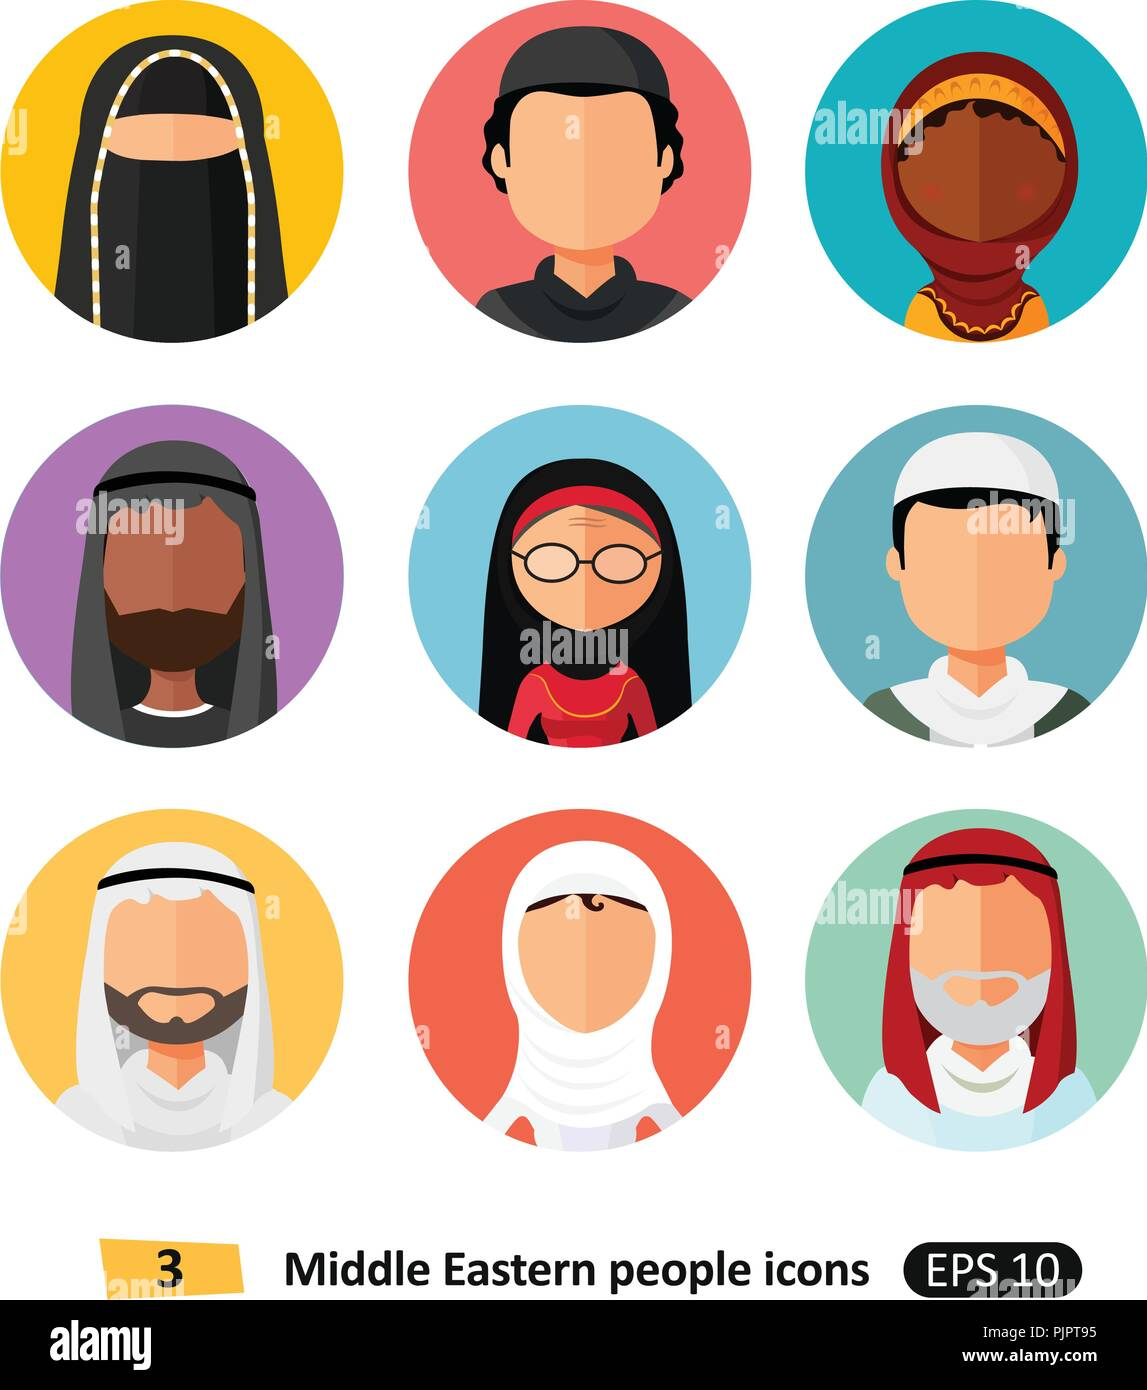 Vector middle eastern aran muslim people Icons avatar user - Stock Vector